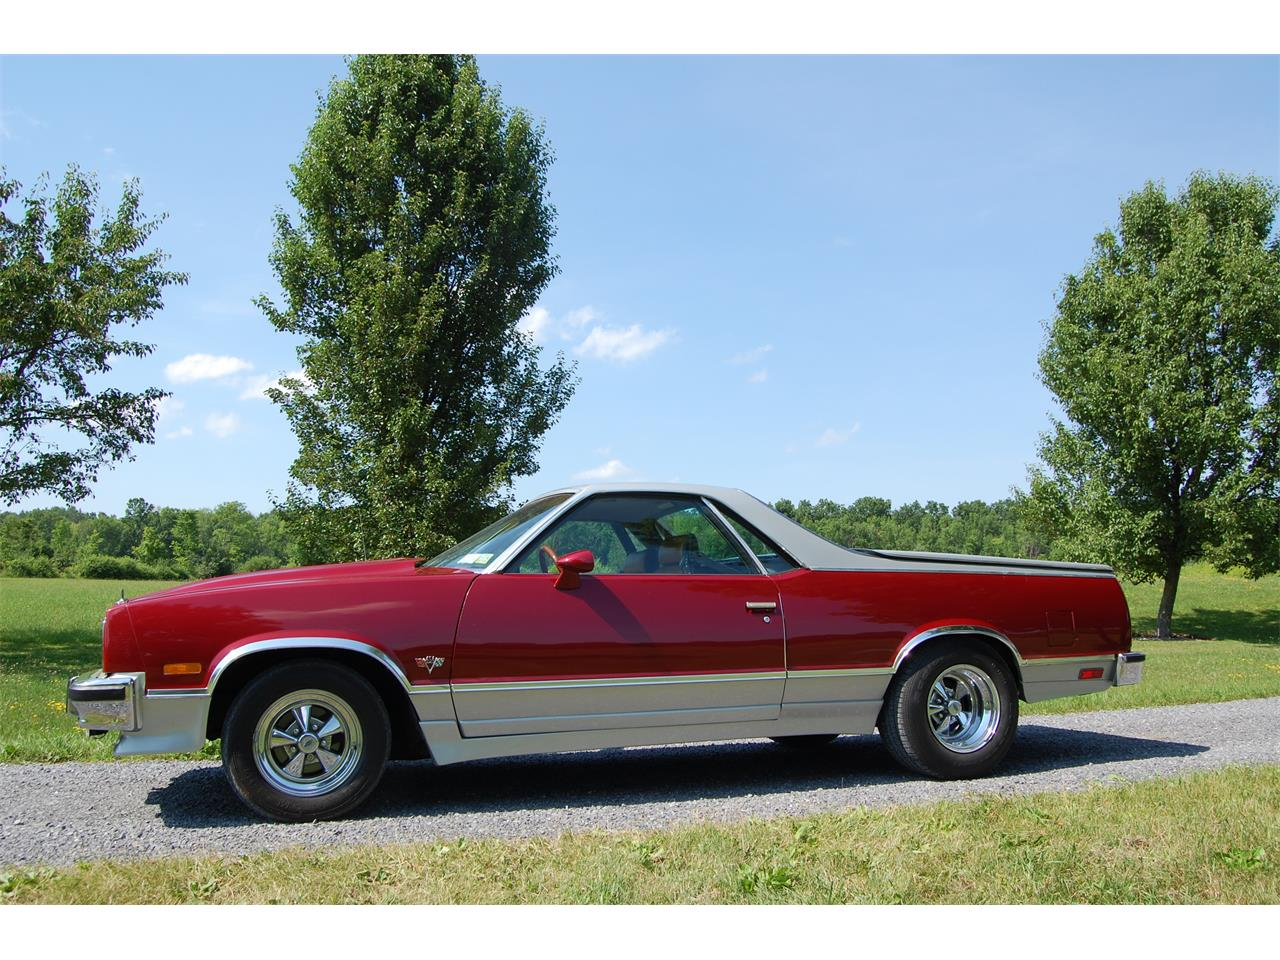 Large Picture of 1984 El Camino - $18,500.00 Offered by a Private Seller - O8B6